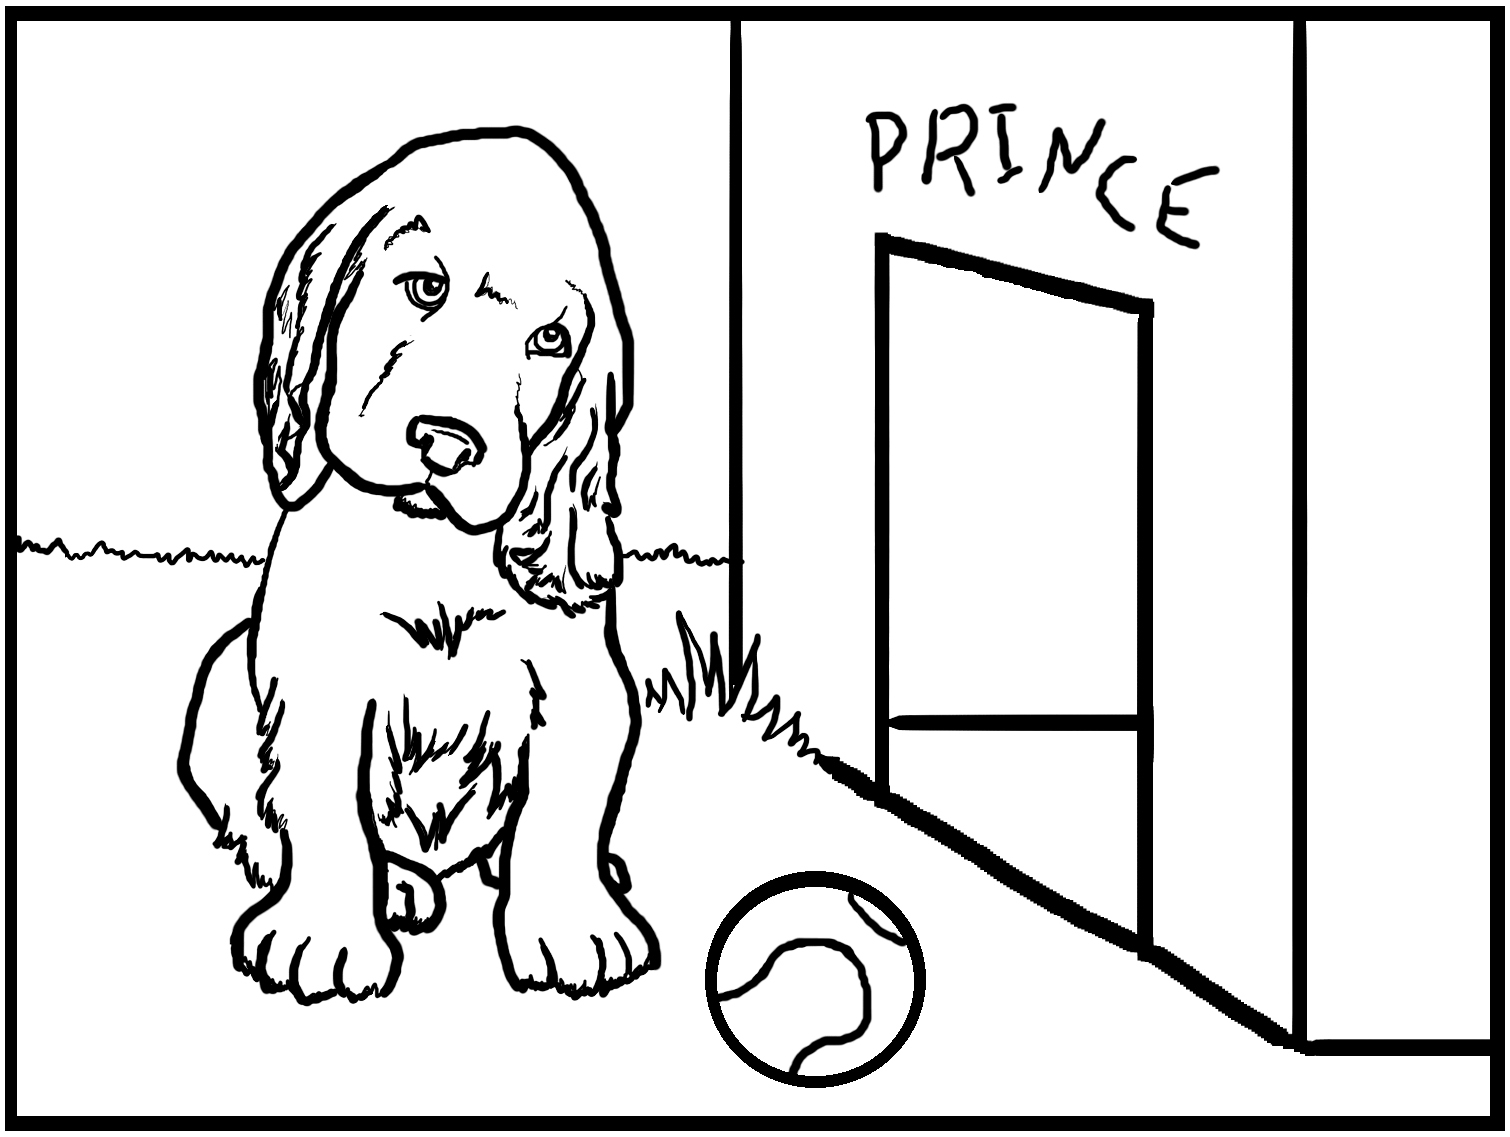 Printable coloring pages for 12 year olds - Printable Dog Coloring Pages For Kids